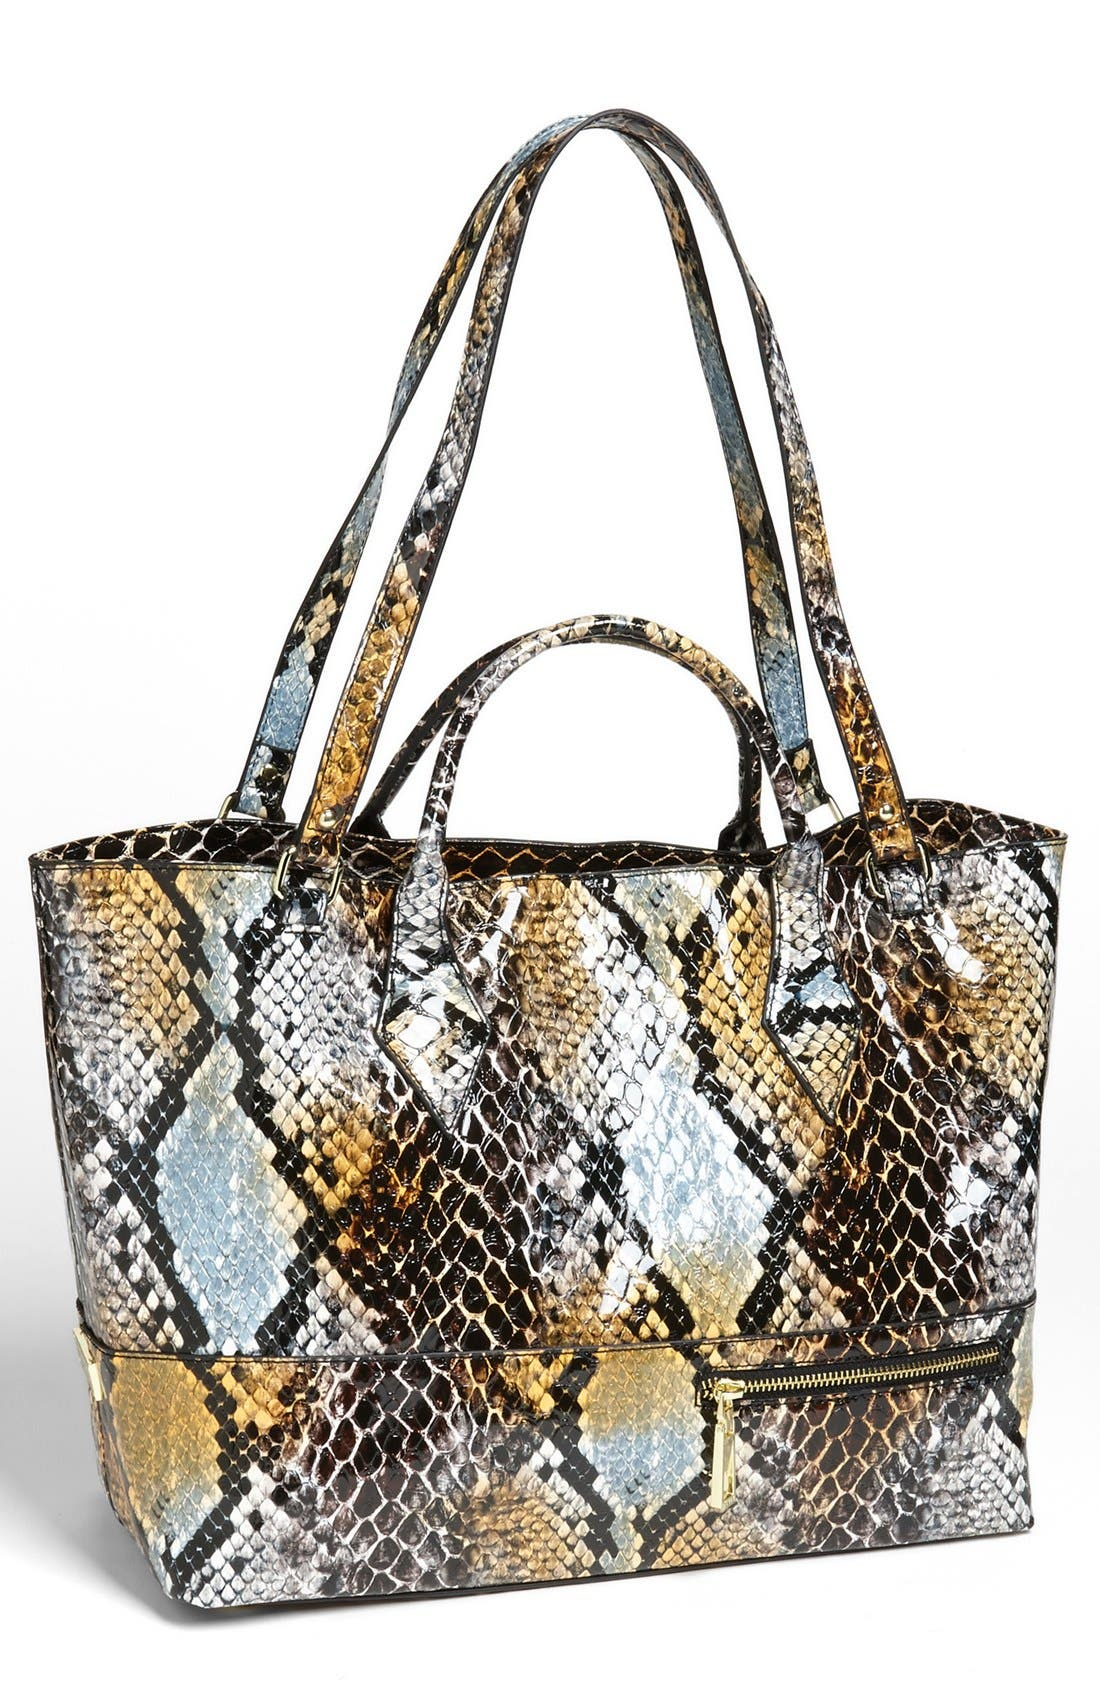 Main Image - Steven by Steve Madden 'Syria' Tote